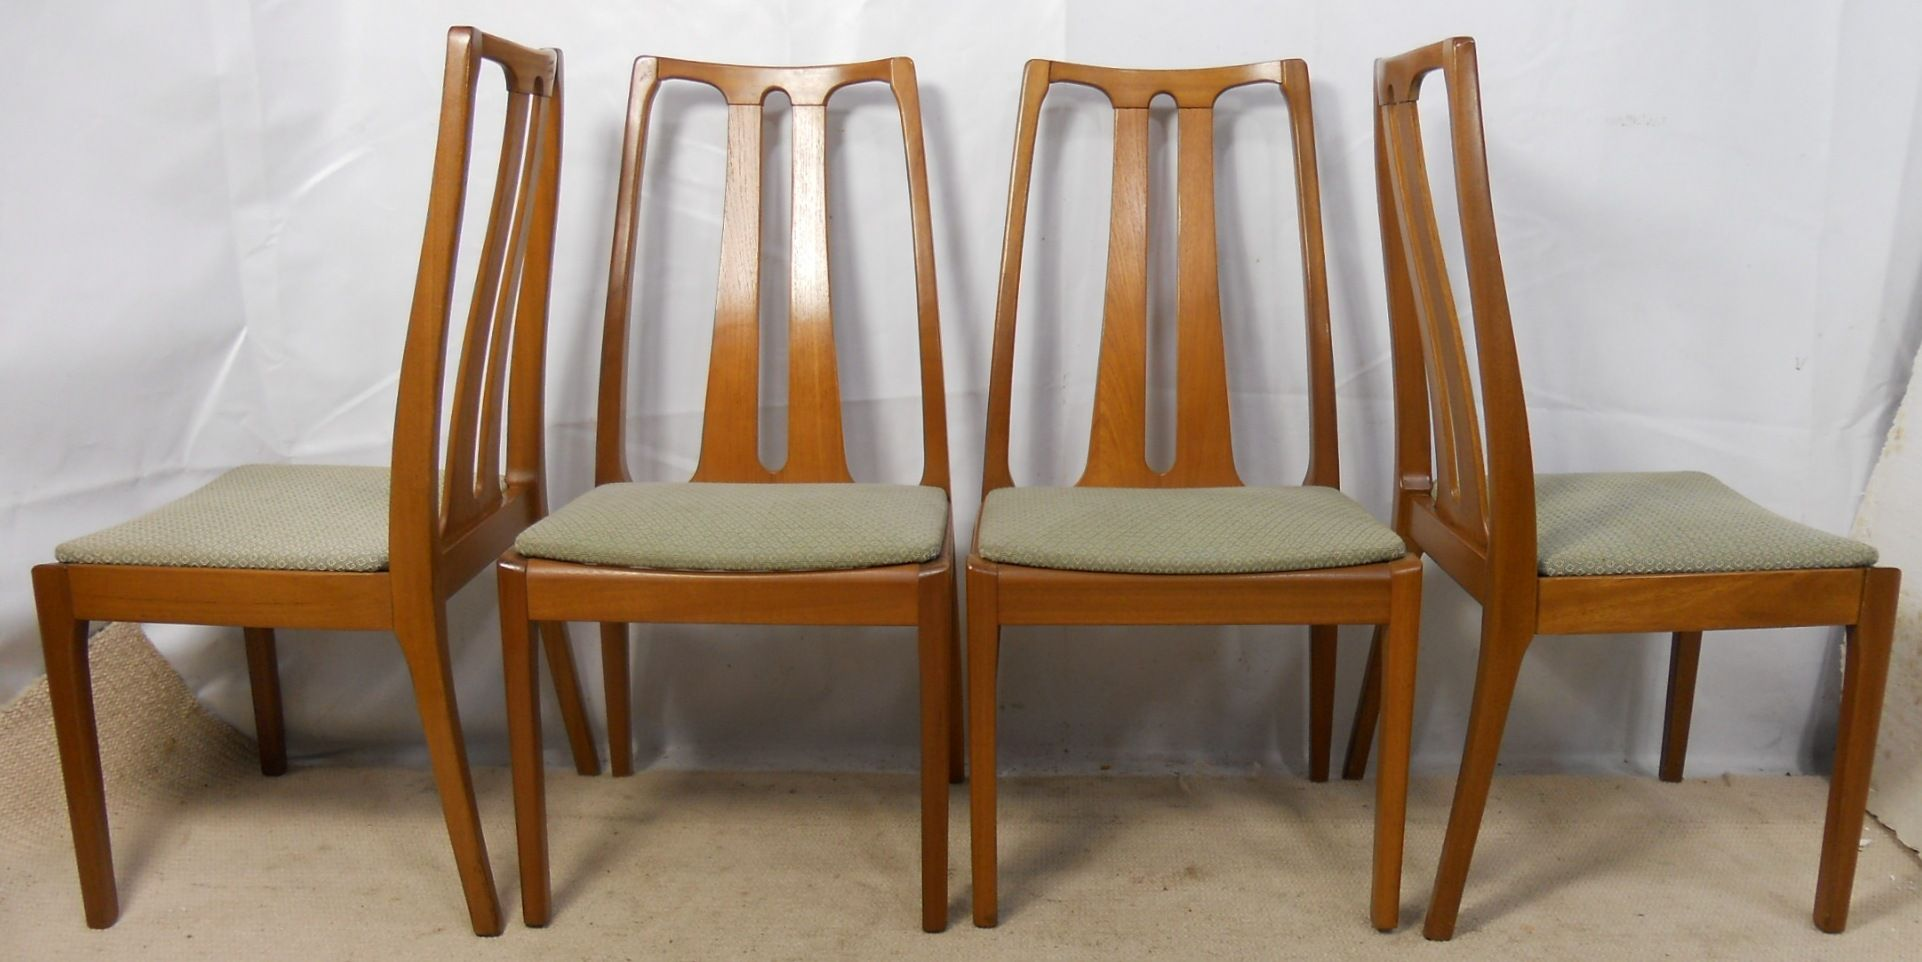 of Four Teak Retro Dining Chairs by Nathan - SOLD